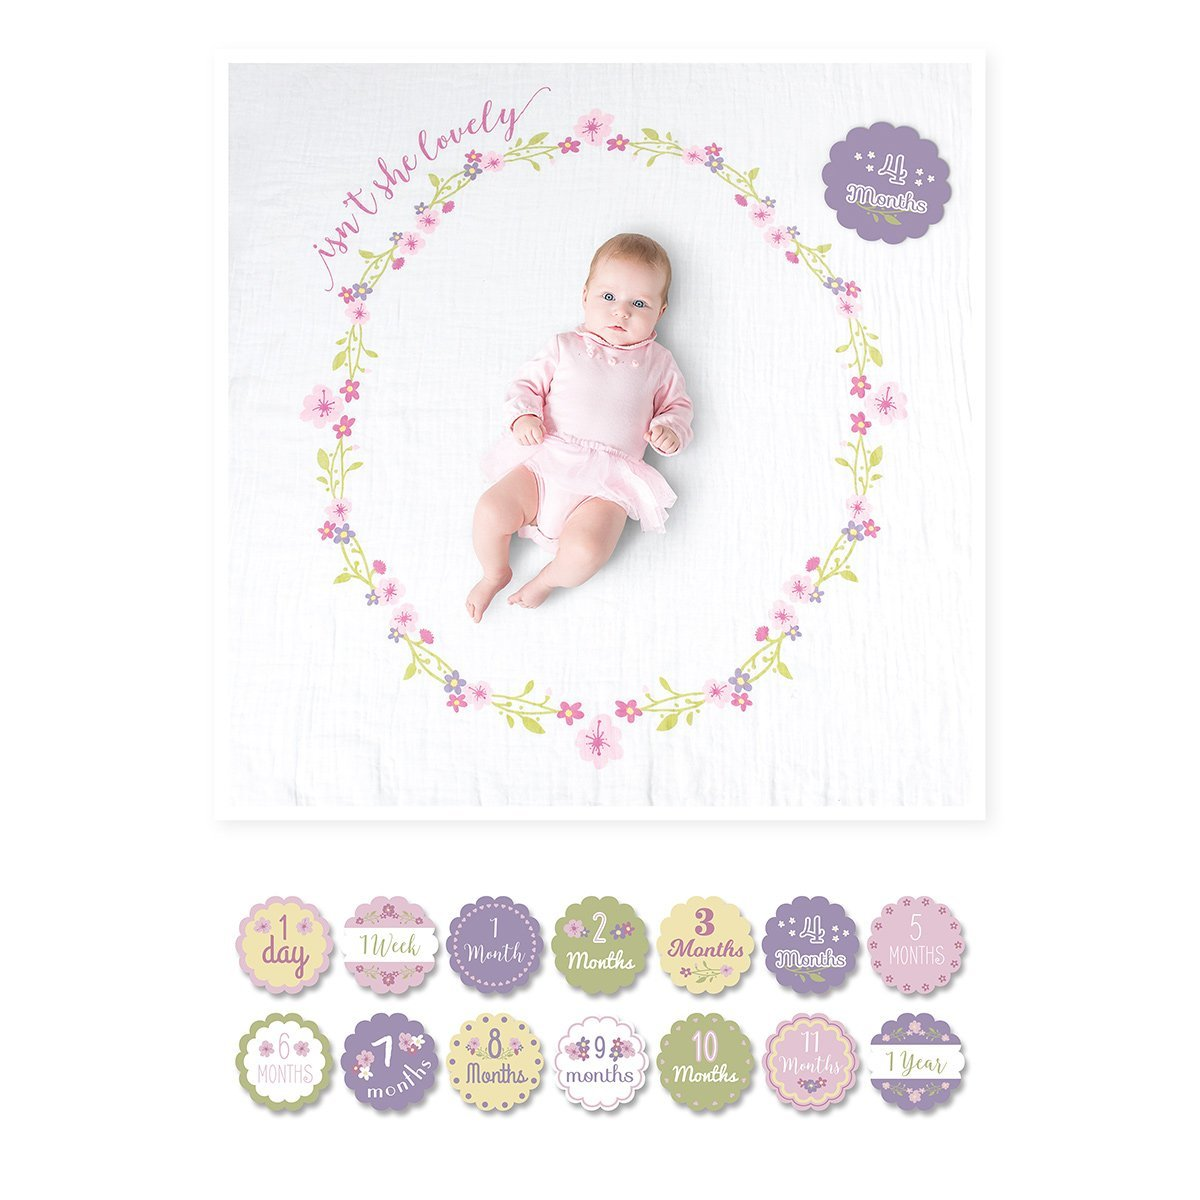 Lulujo's Baby First Year Milestone Blanket & Cards Set - Isn't She Lovely